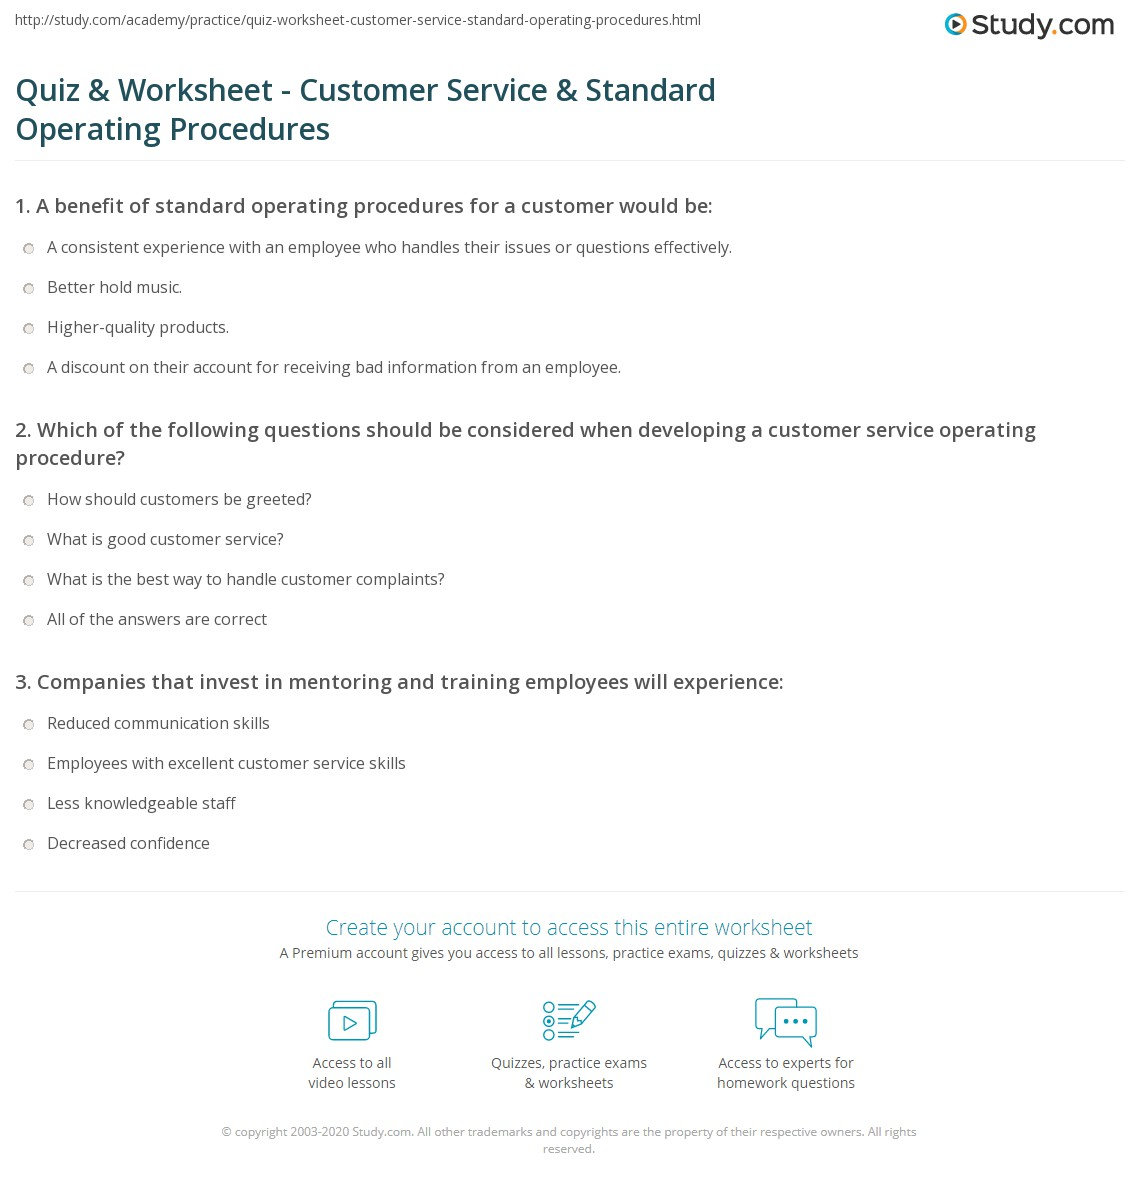 Customer Service & Standard Operating